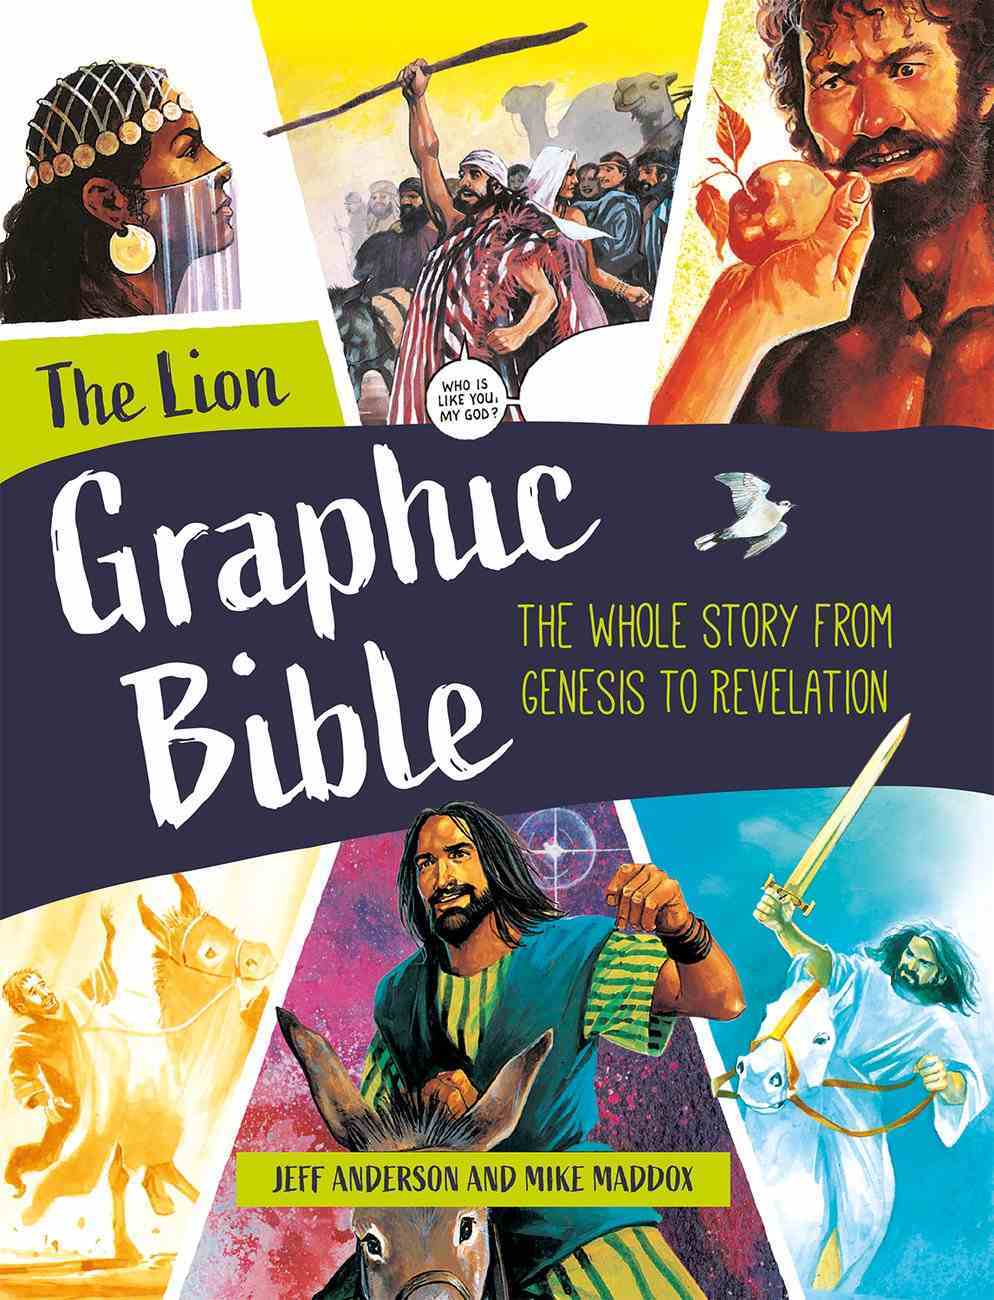 The Lion Graphic Bible: The Whole Story From Genesis to Revelation Hardback